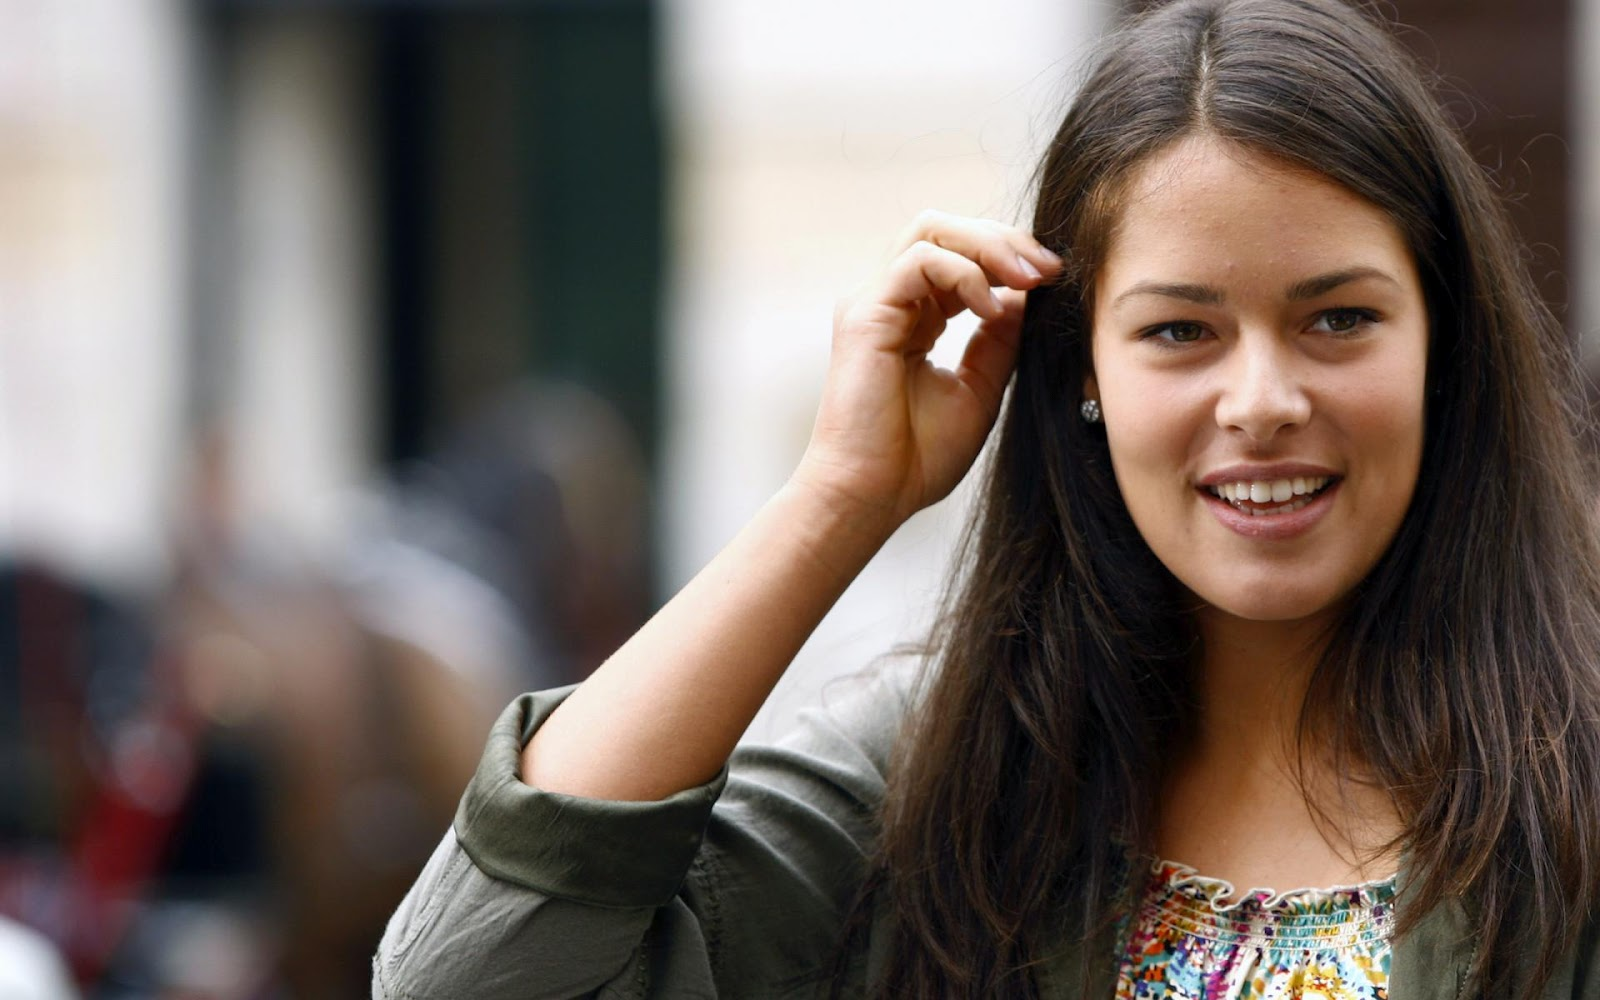 ana ivanovic dating Ana ivanovic (serbian: ana ivanović, ана ивановић pronounced [âna ǐʋanoʋitɕ, ǎː-] ( listen) born 6 november 1987) is a retired serbian tennis player she was ranked no 1 in the world in 2008, after she had defeated dinara safina to win the 2008 french open.